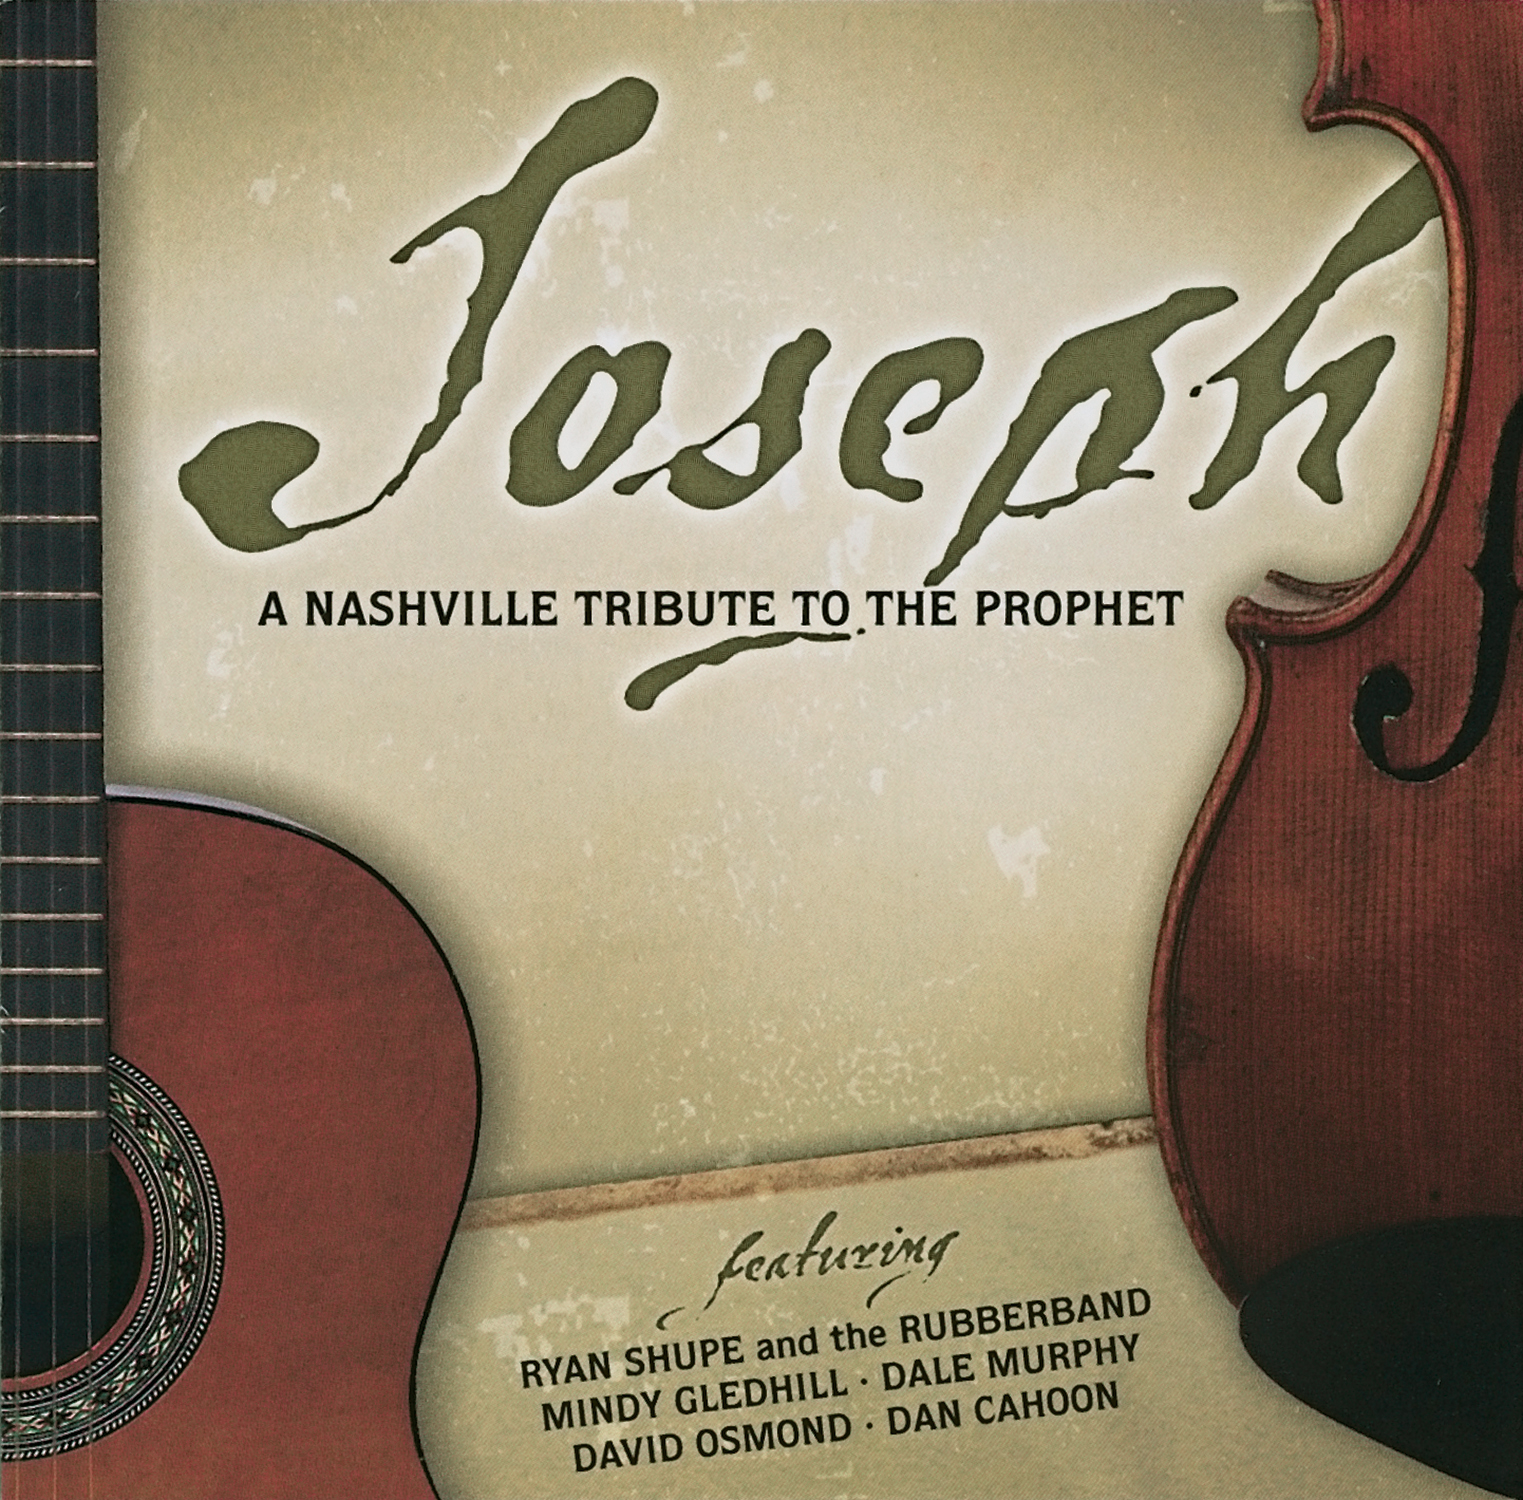 A CD cover titled Joseph with part of a guitar and a violin showing.